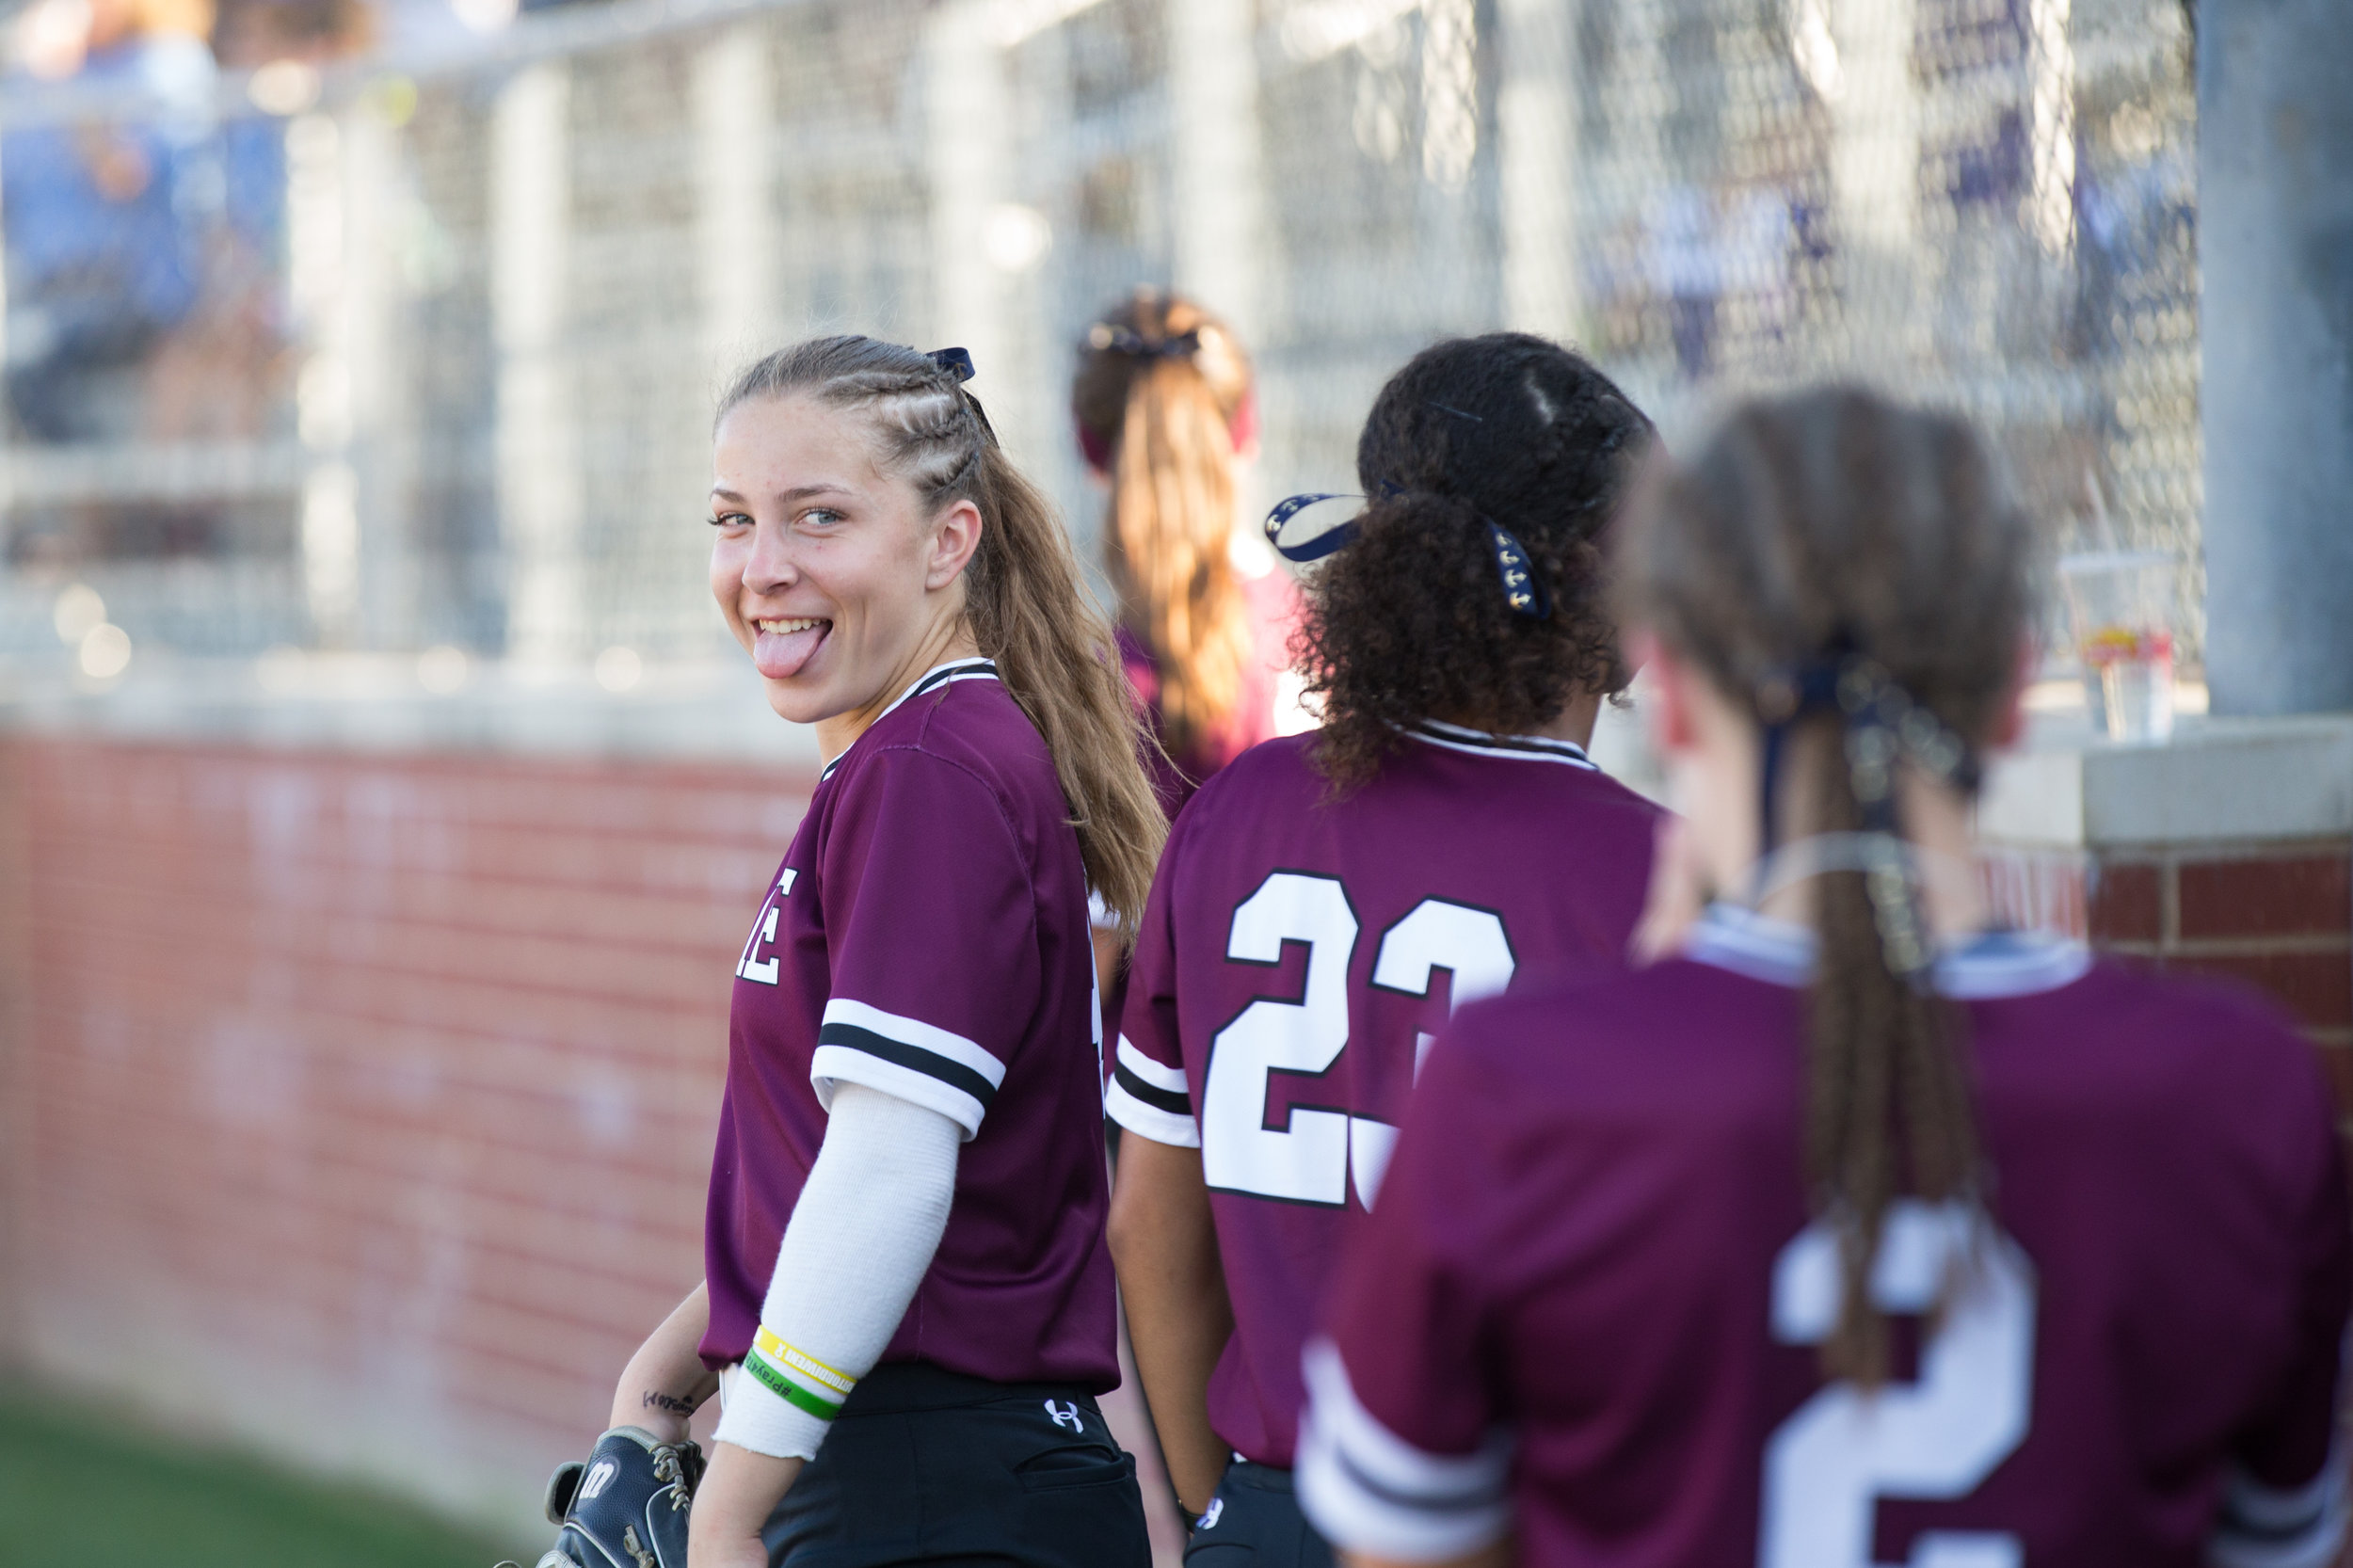 5_18 Wylie Softball-105.jpg